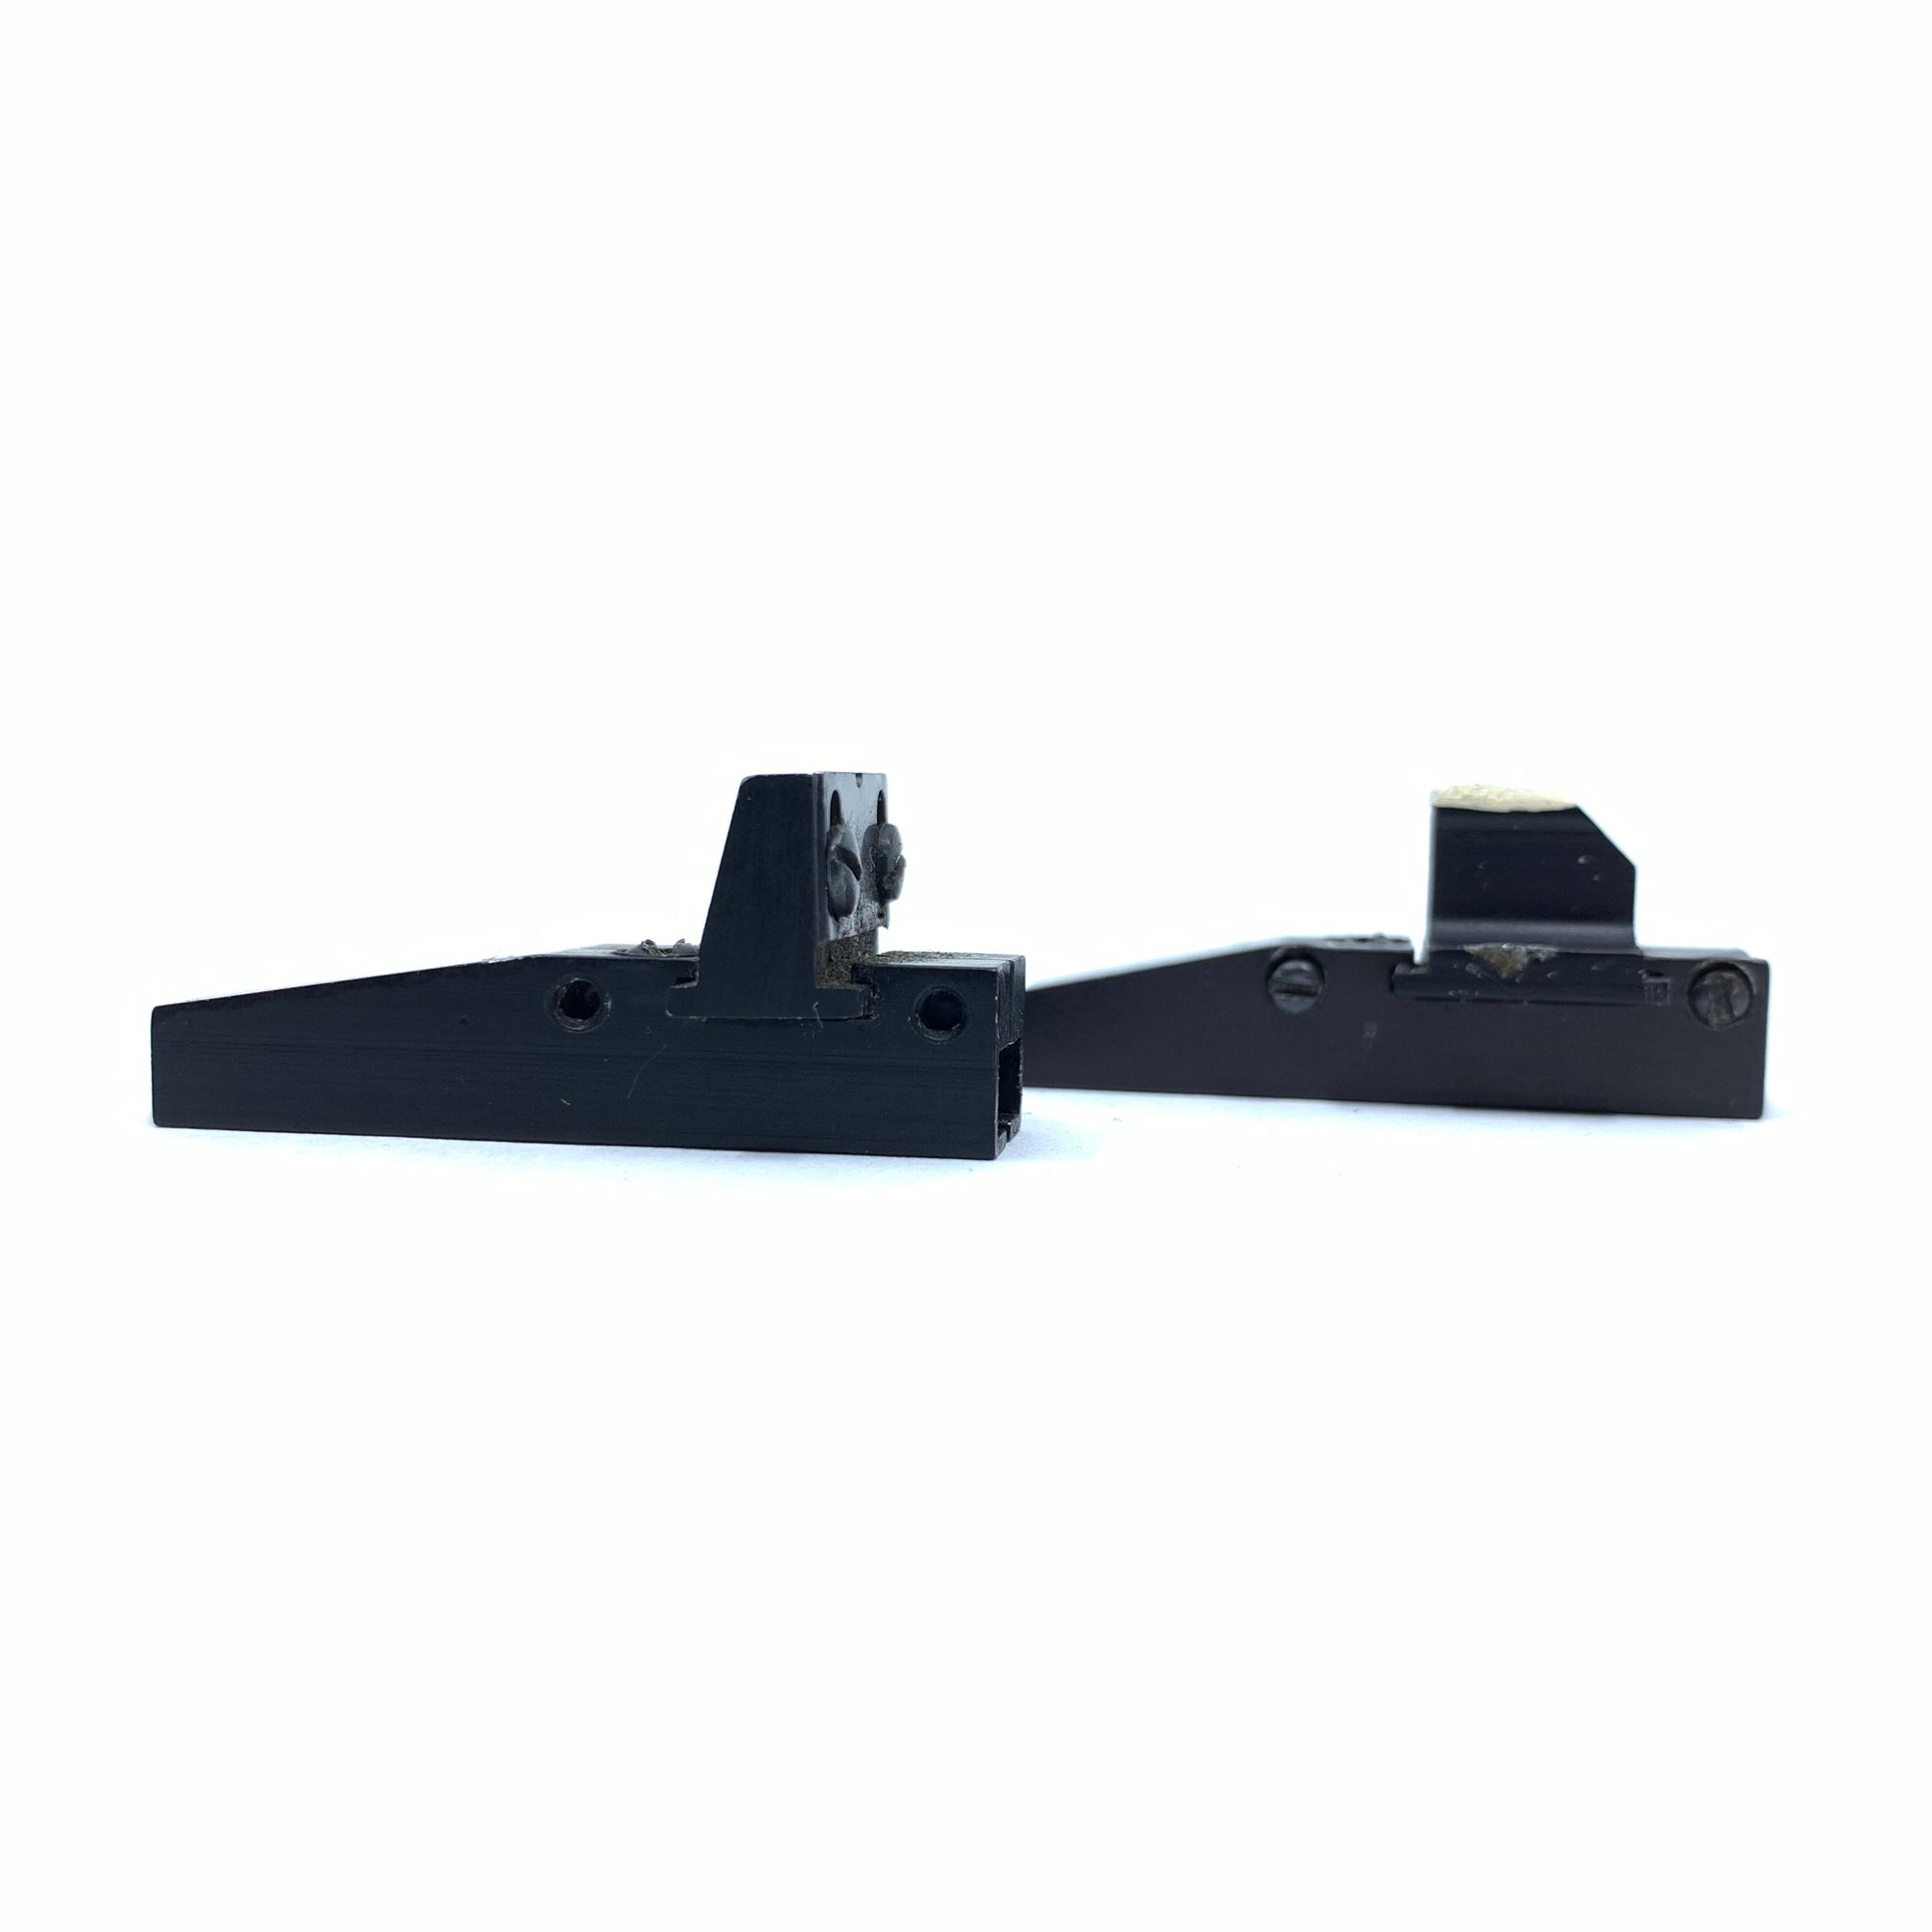 "1 Set Front & Back Rifle Sights For 1/4"" Rib Shotgun"